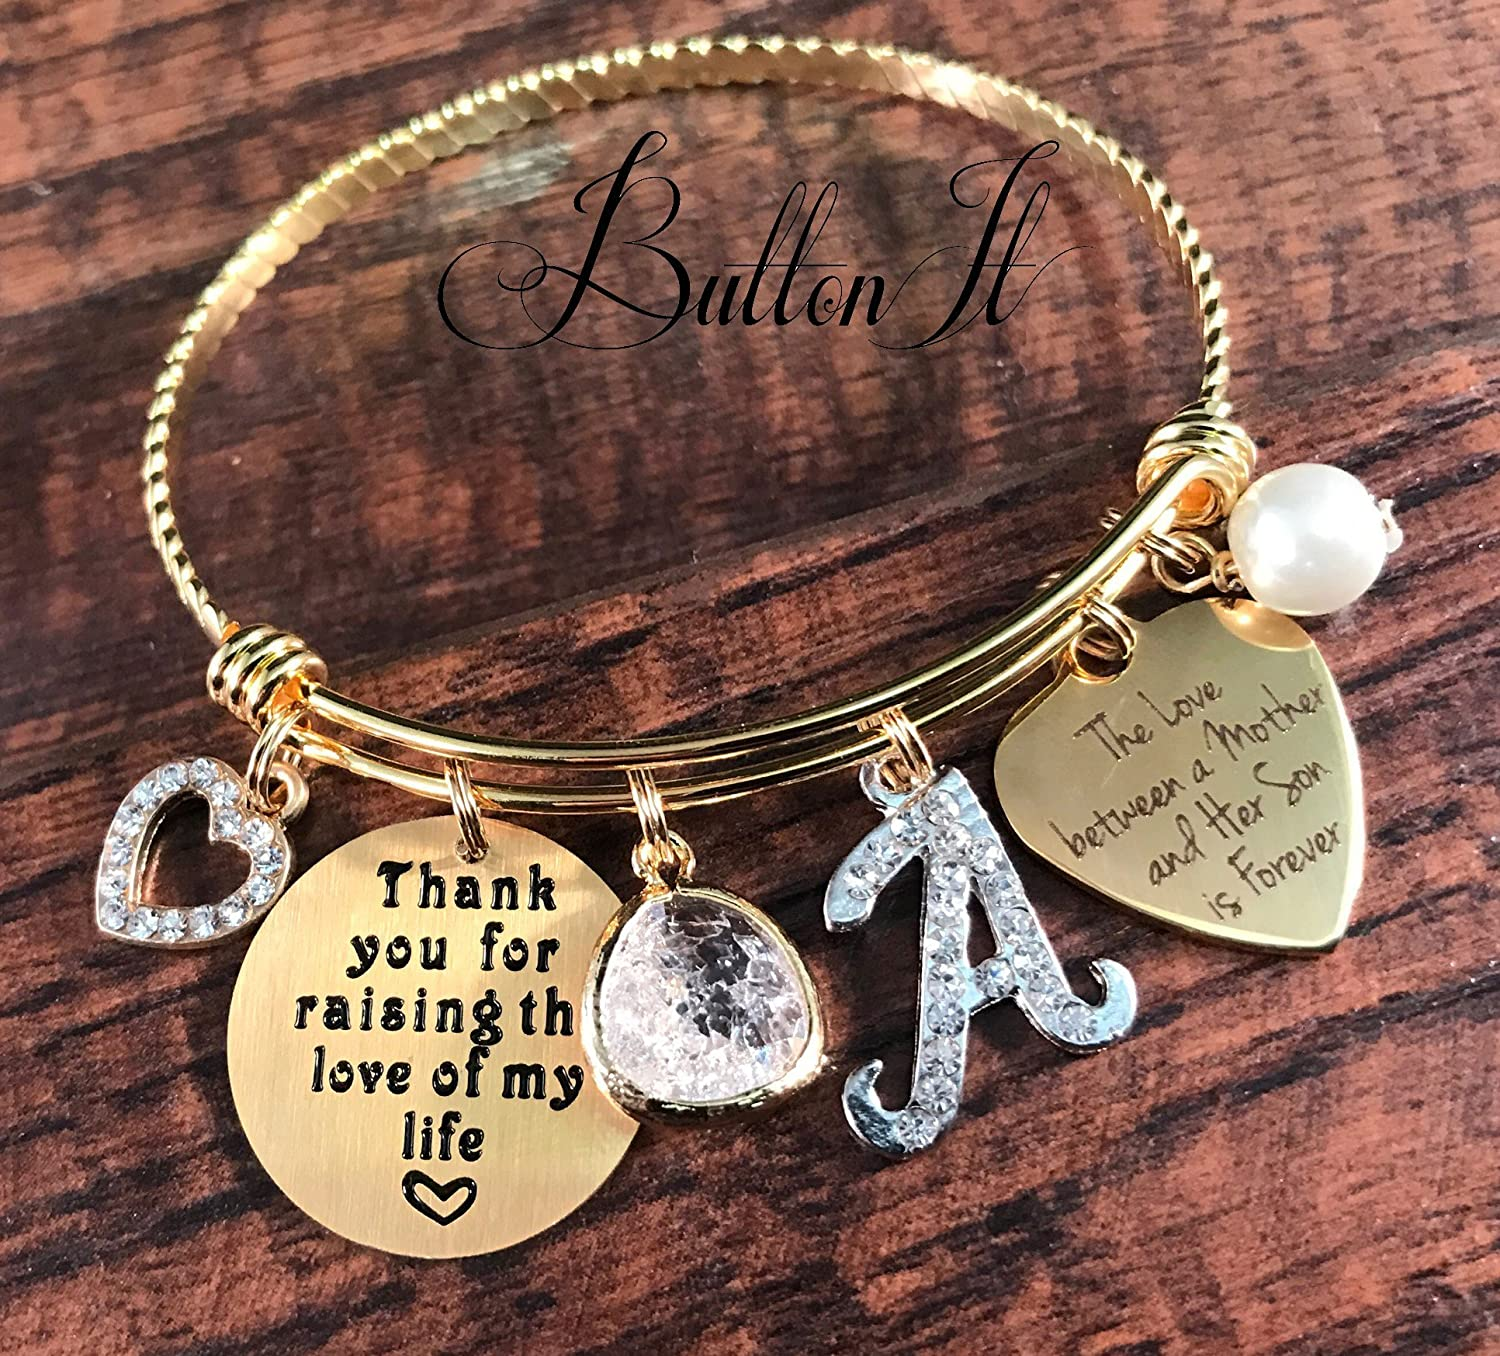 Thank You Bracelet Life Charms Silver Plated Jewellery Gift For Her